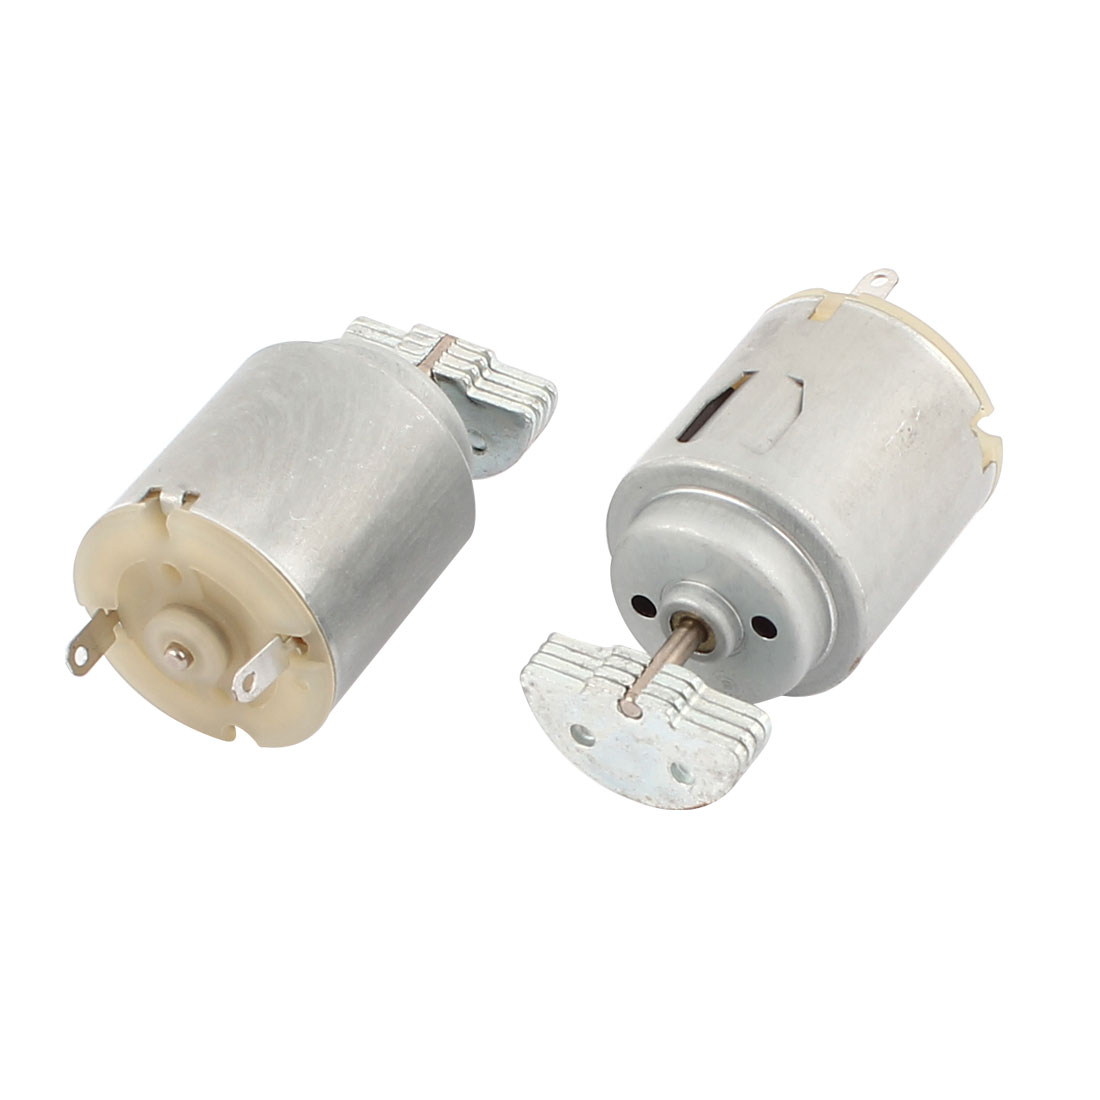 2PCS 280 DC 12V 2750RPM Silver Tone Micro Brush Vibration Motor